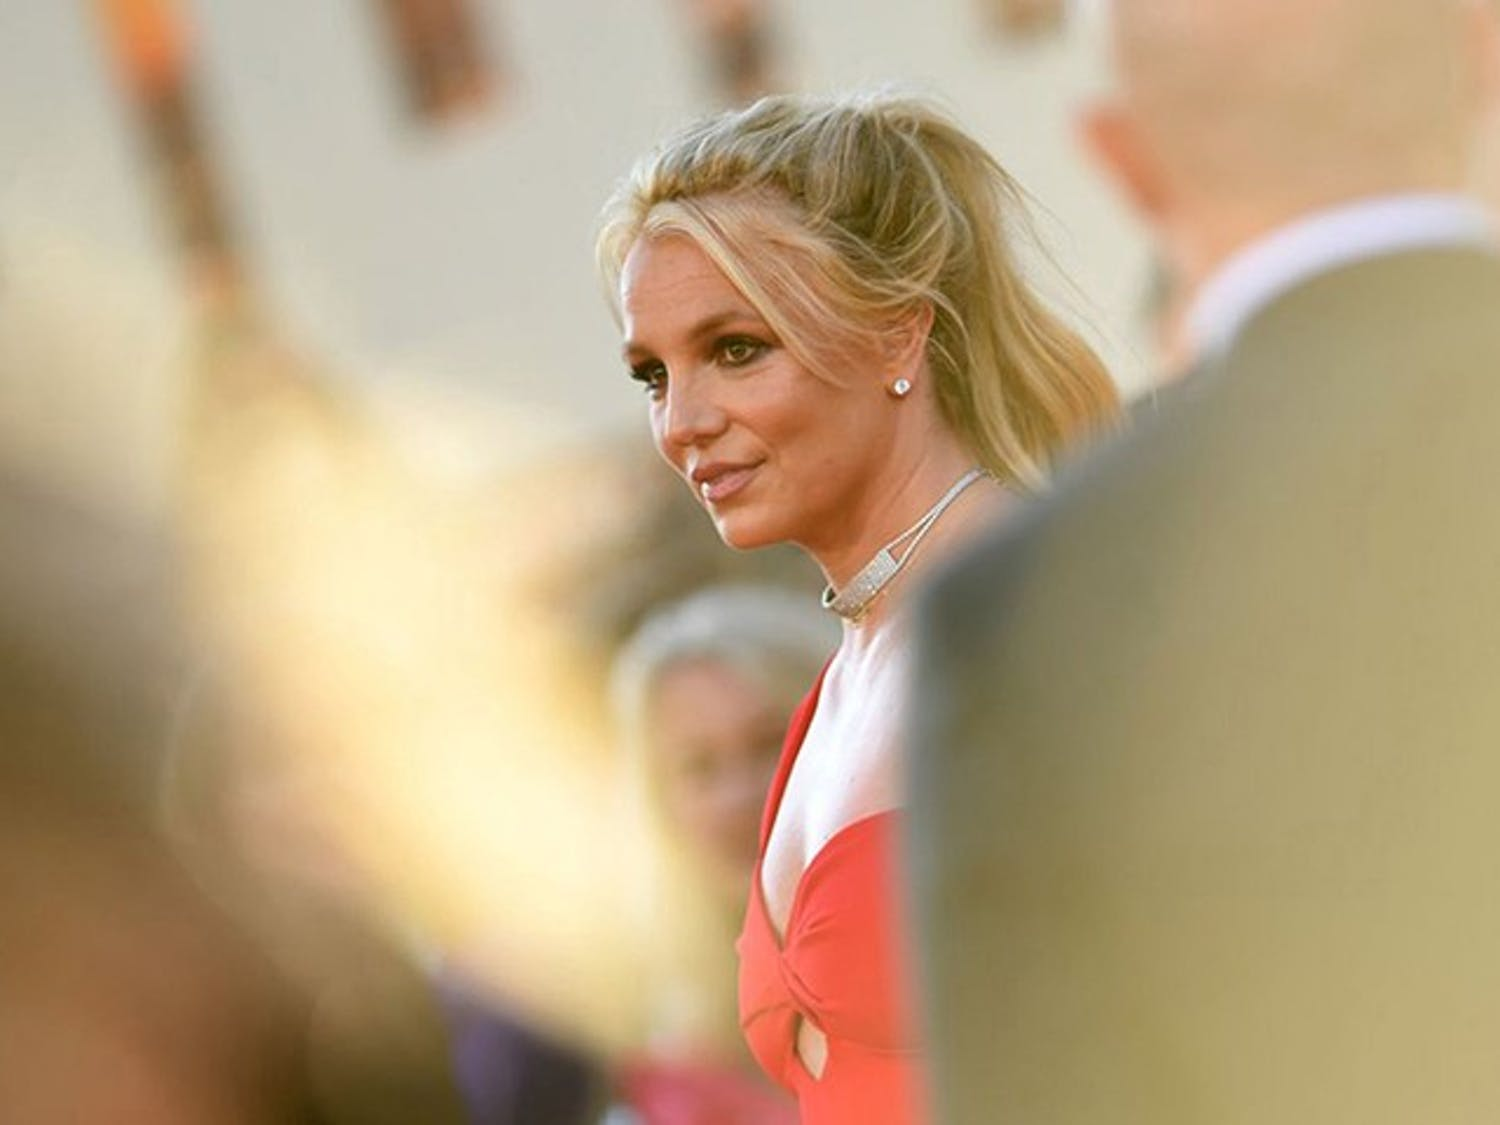 Britney Spears arrives at a movie premiere in 2019.